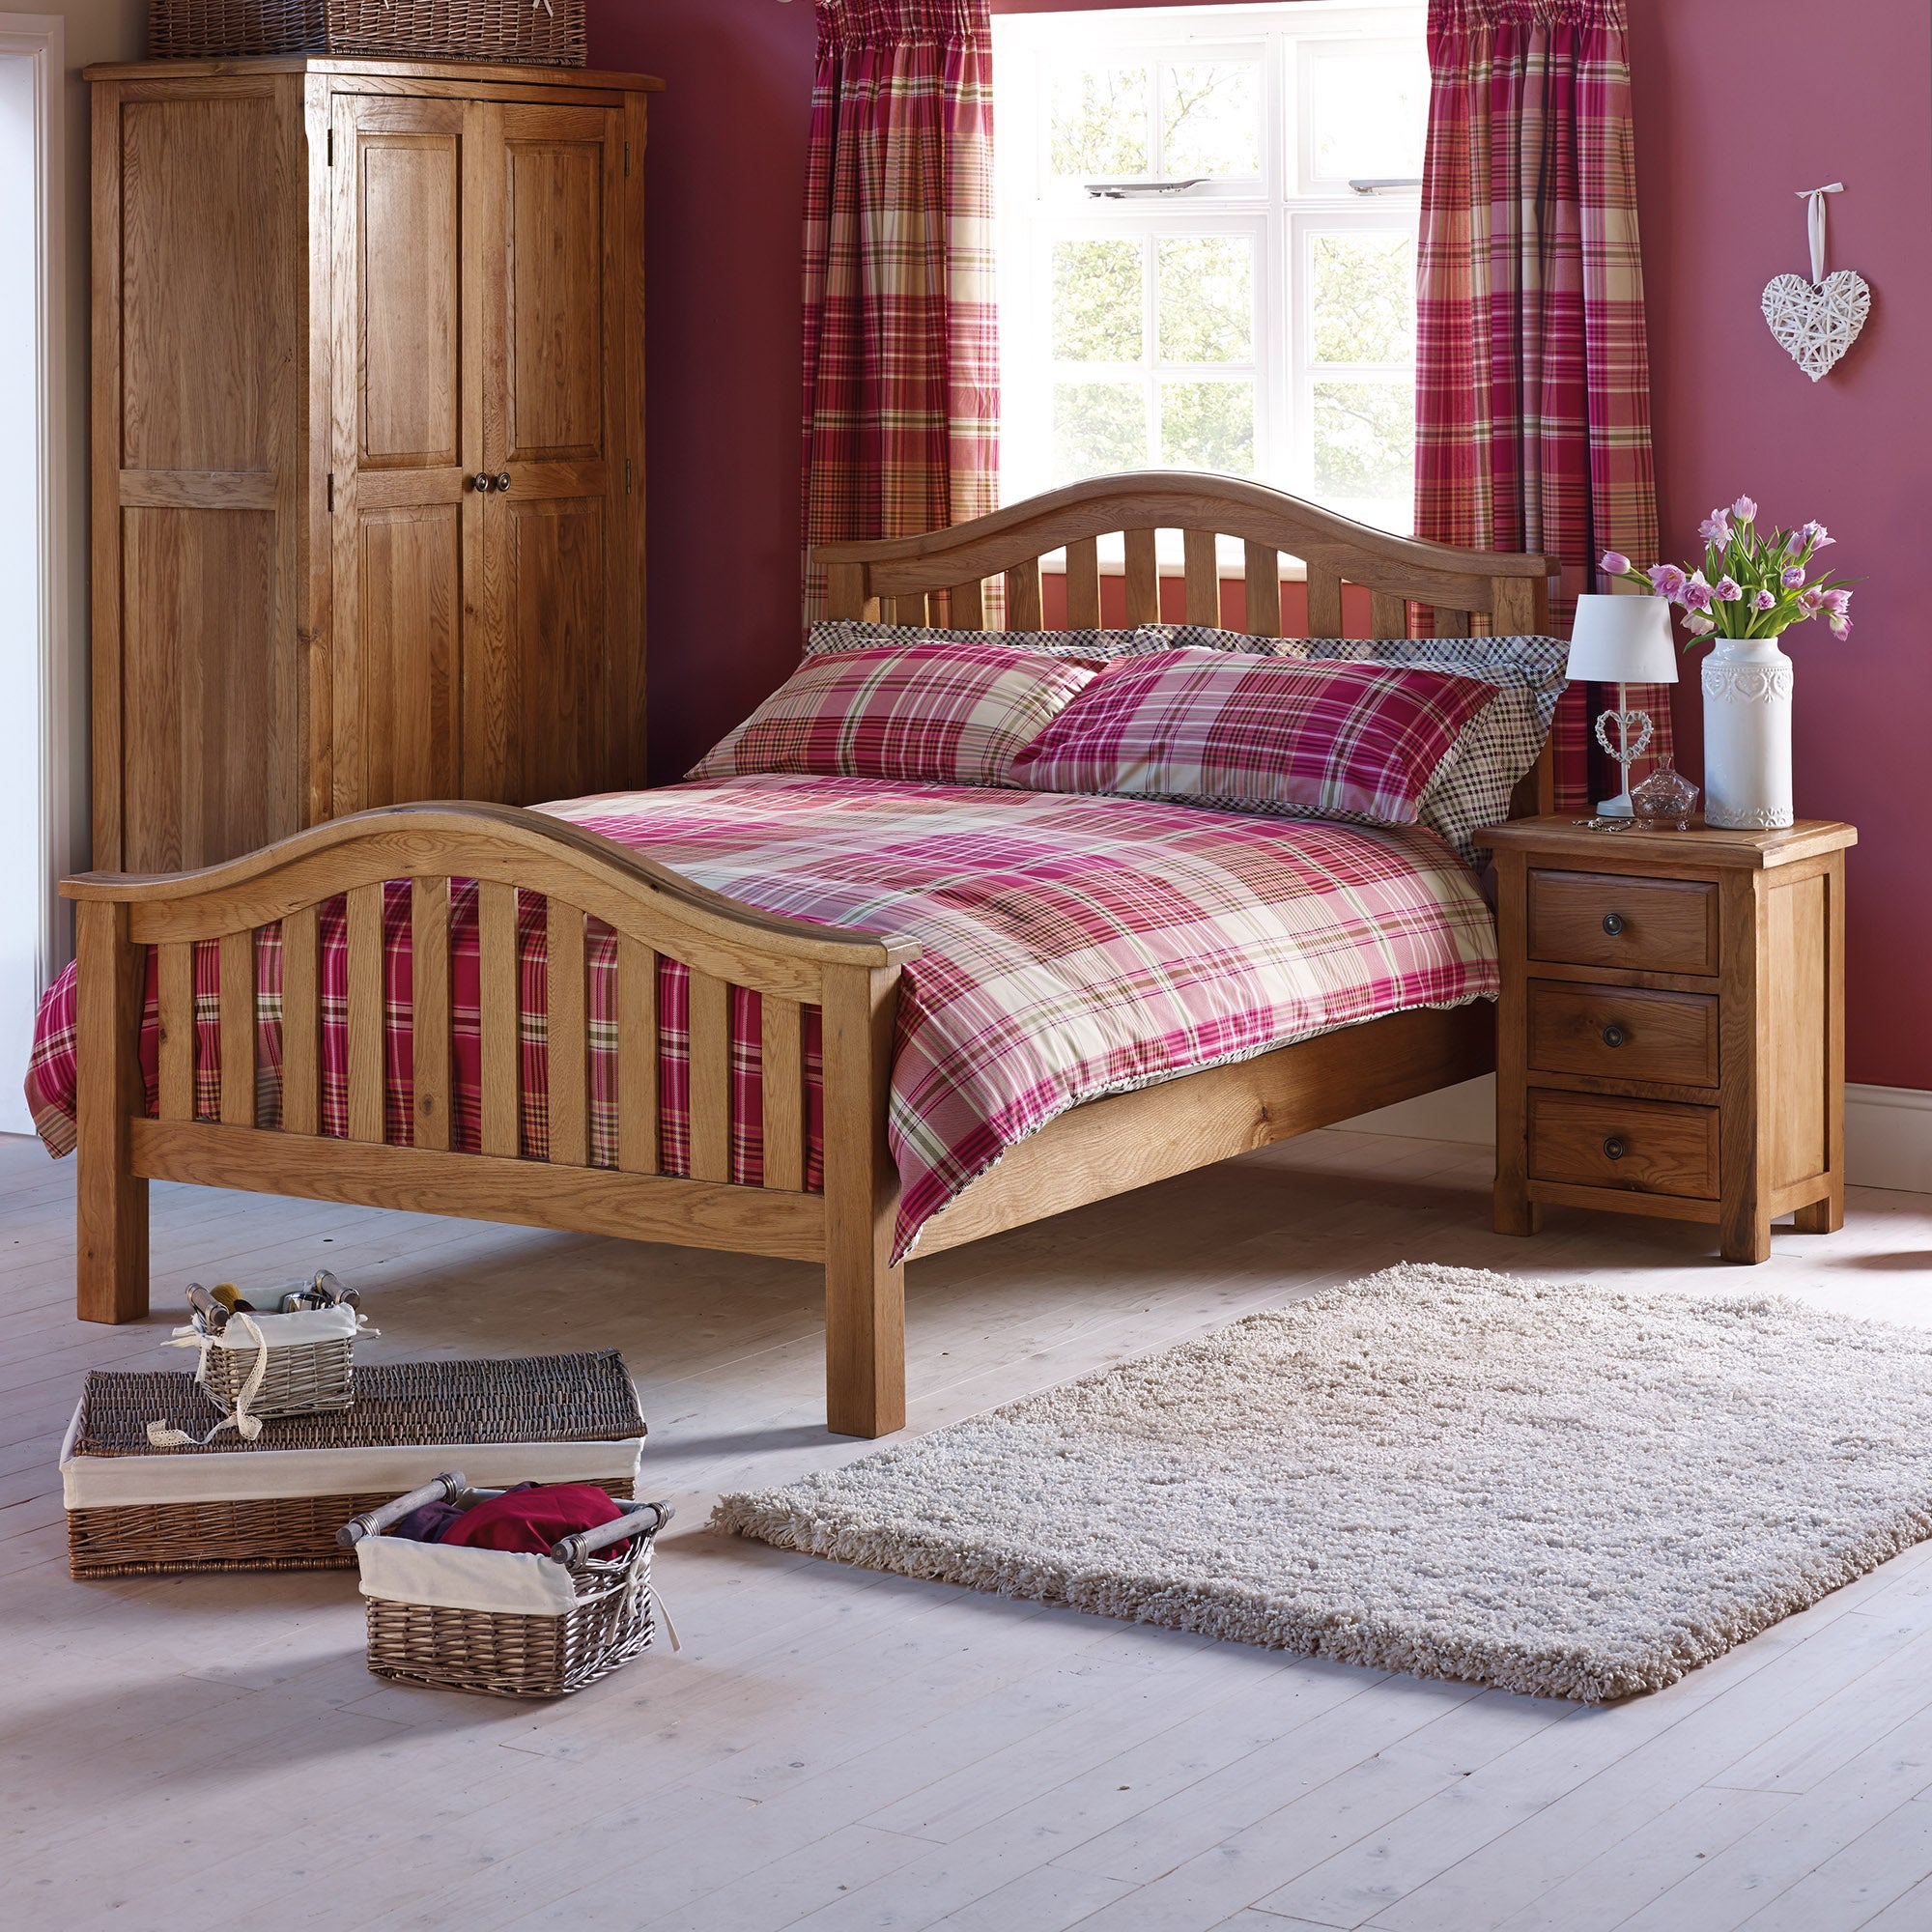 Gainsborough Oak Bedroom Furniture Collection